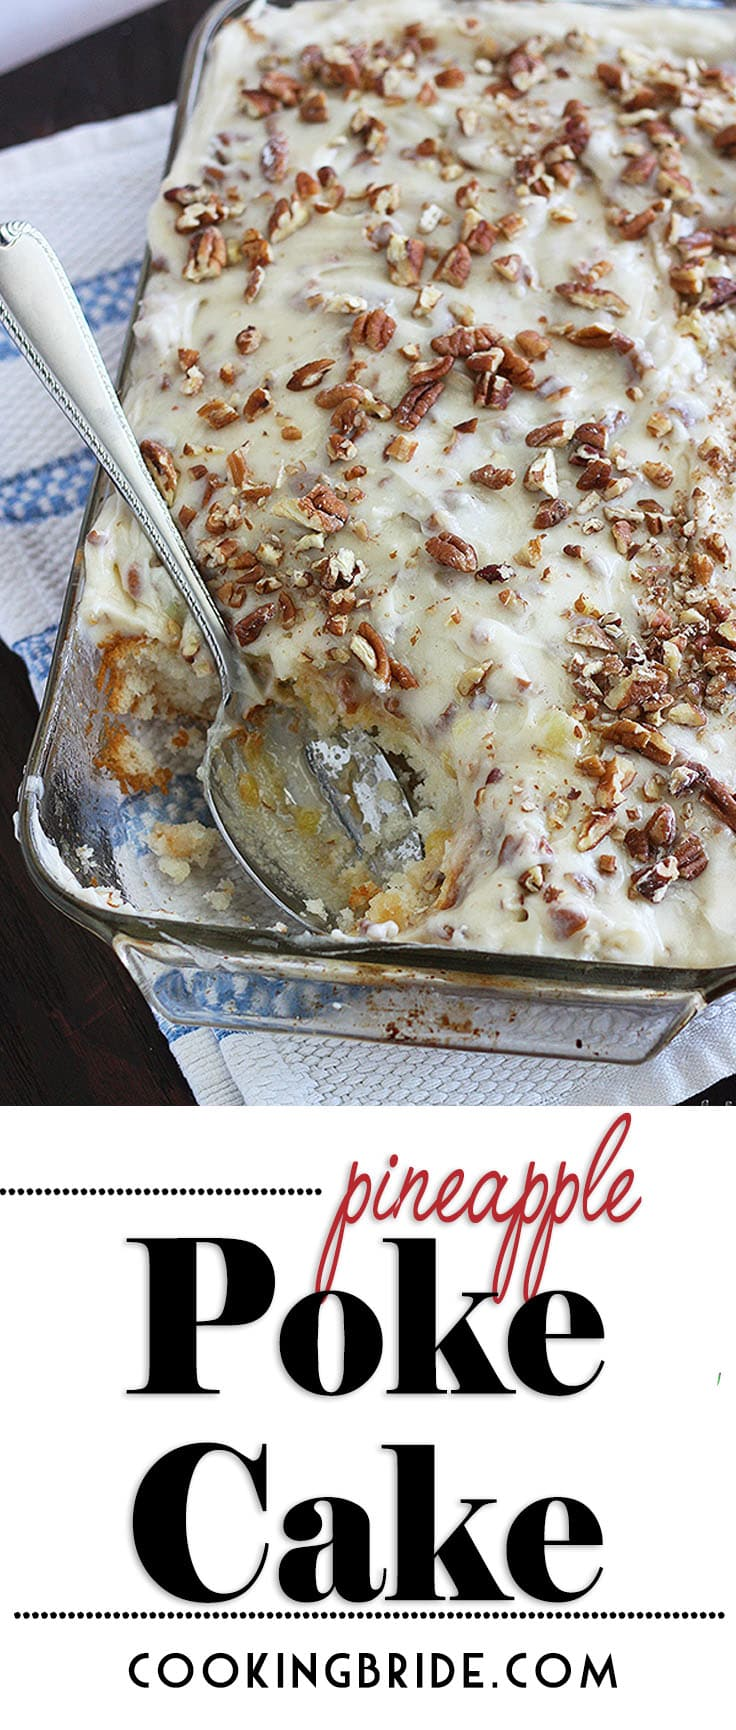 Pineapple poke cake is a quick and simple dessert with big results. Light white cake mix is drenched with sweet pineapple juice, then topped with a light and fluffy whipped cream cheese topping and crunchy chopped pecans.